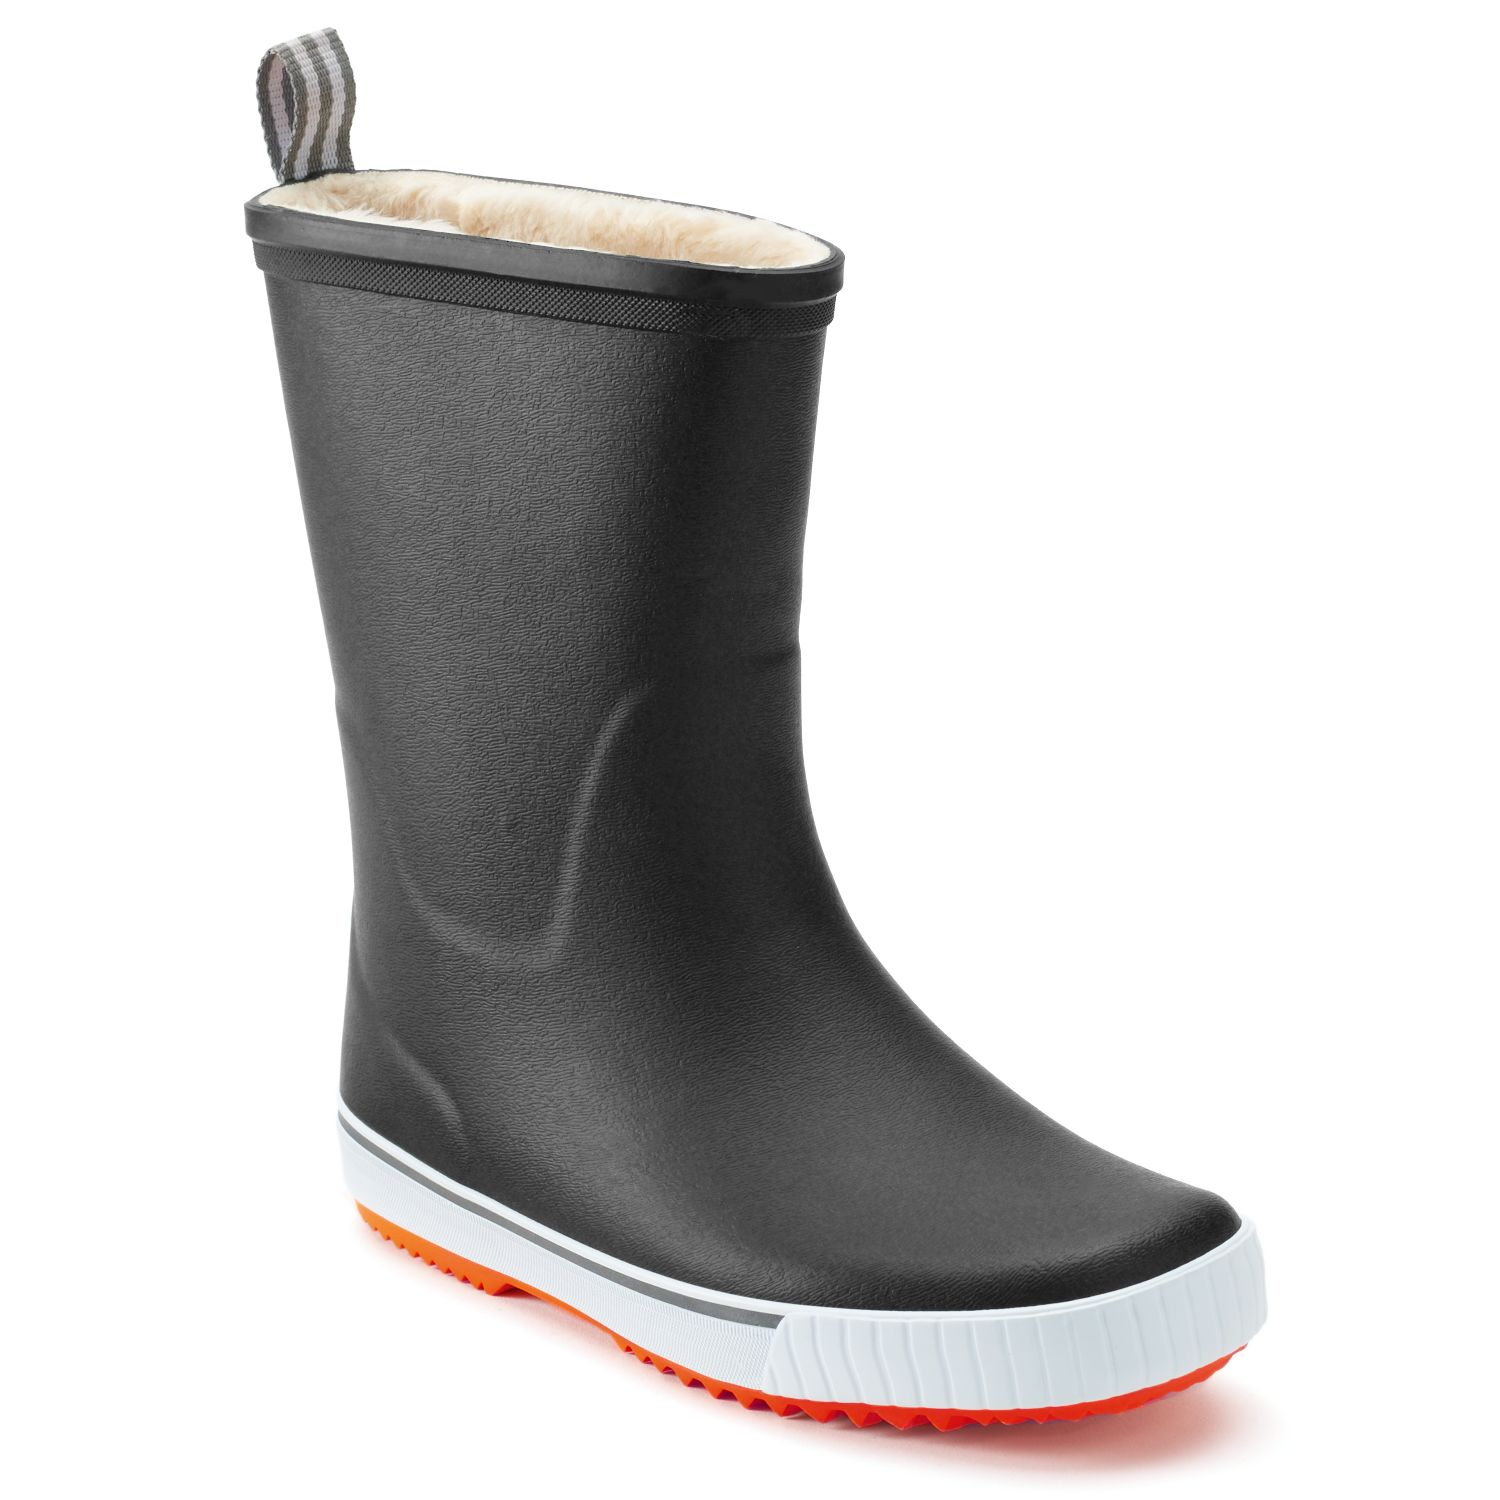 Warm Rain Boots For Women